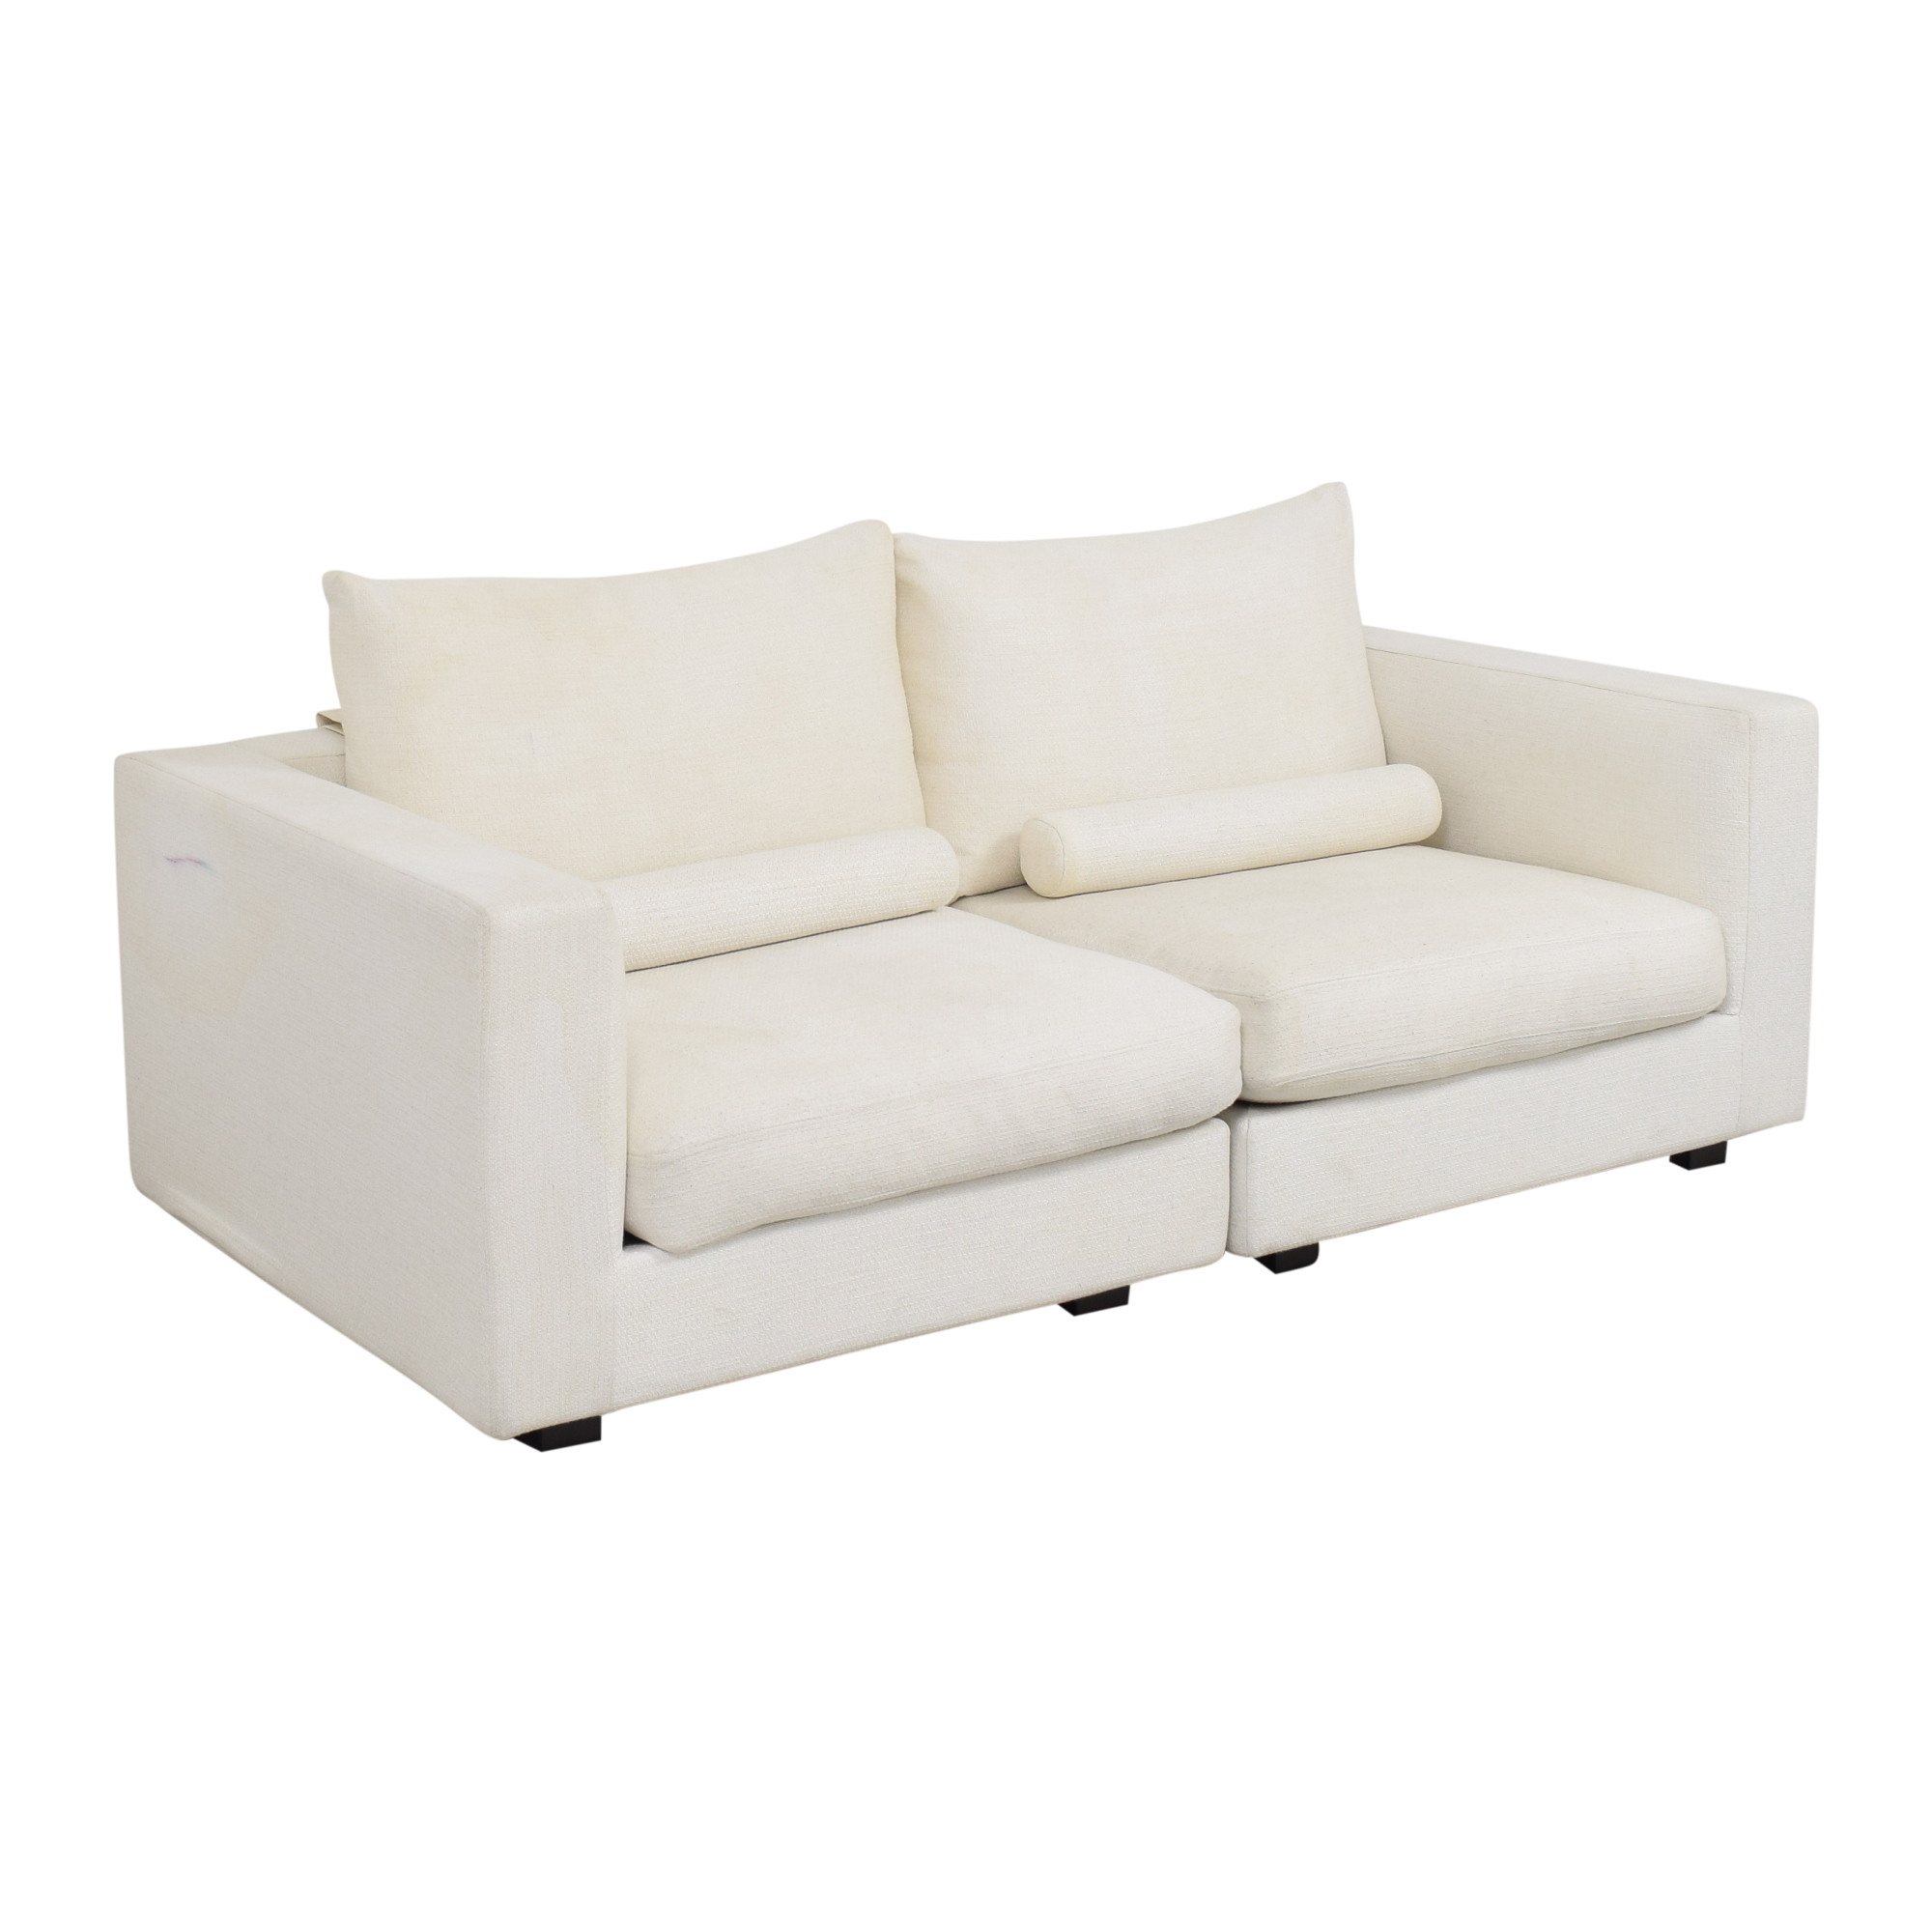 West Elm West Elm Hampton Two Piece Modular Sofa pa